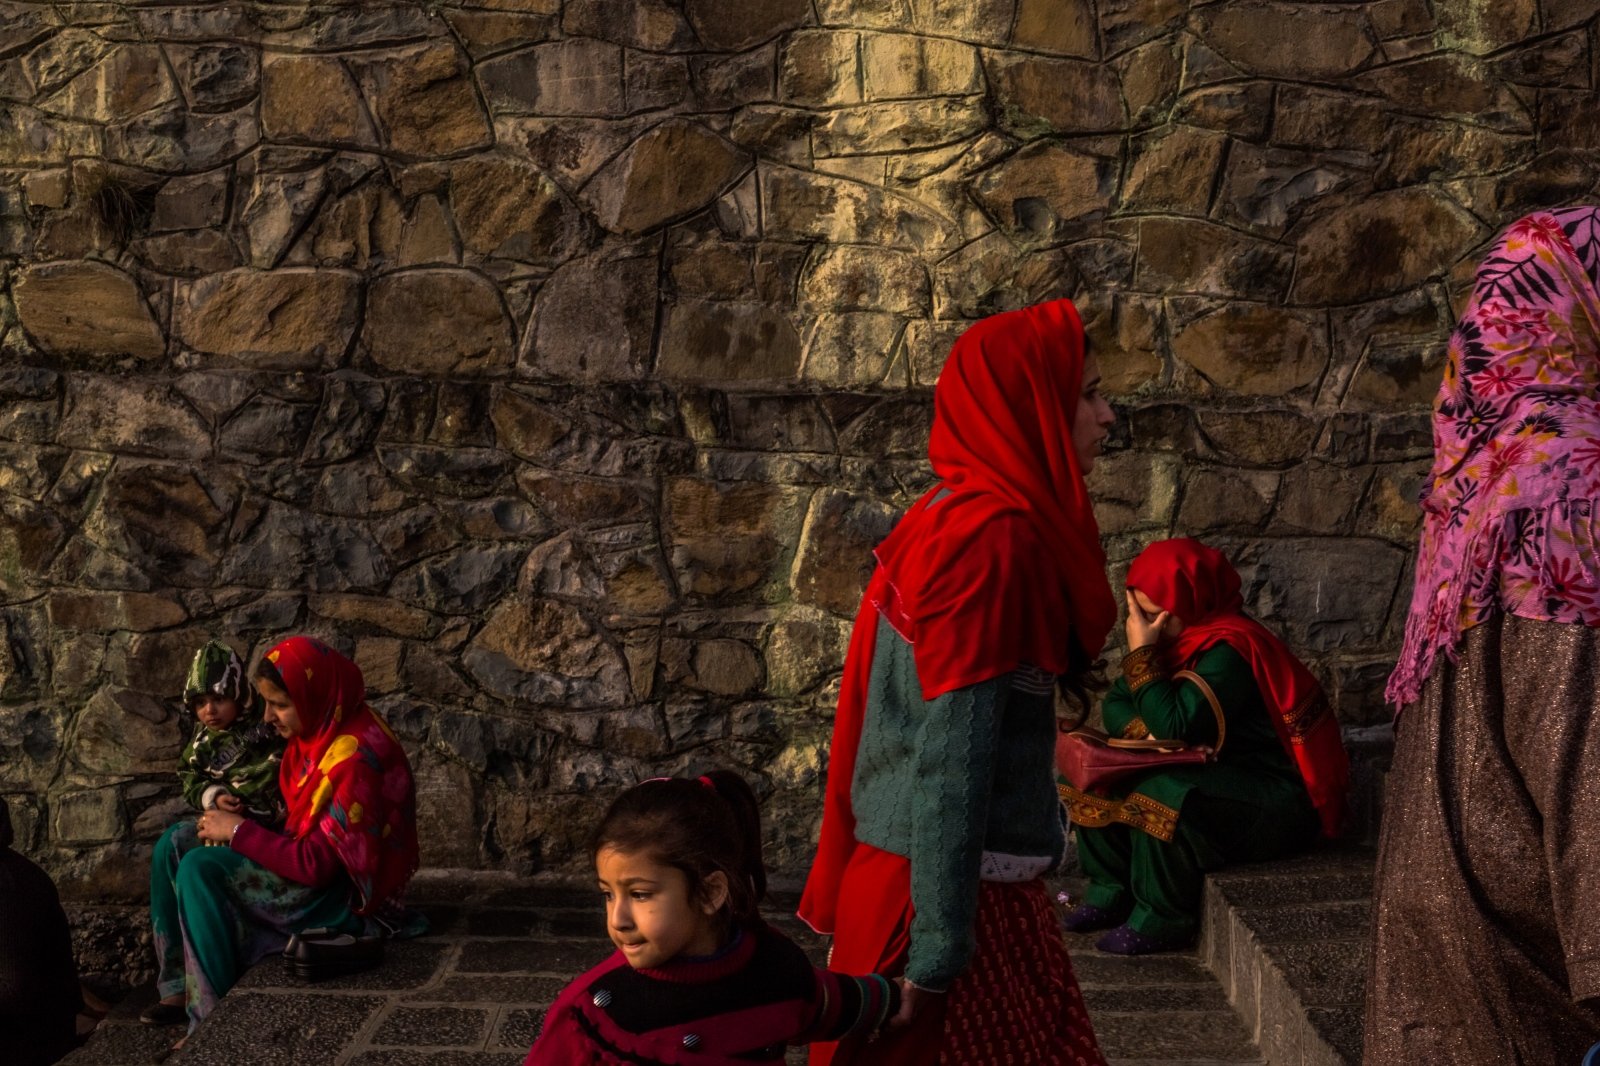 A Kashmiri woman prays on the steps of the Makhdoom Sahib Shrine as others arrive in Srinagar. Many Kashmiris seek solace in shrines dedicated to auspicious saints or put their trust in faith healers, who bless potions and offer recitations or amulets thought to bring powers of protection.